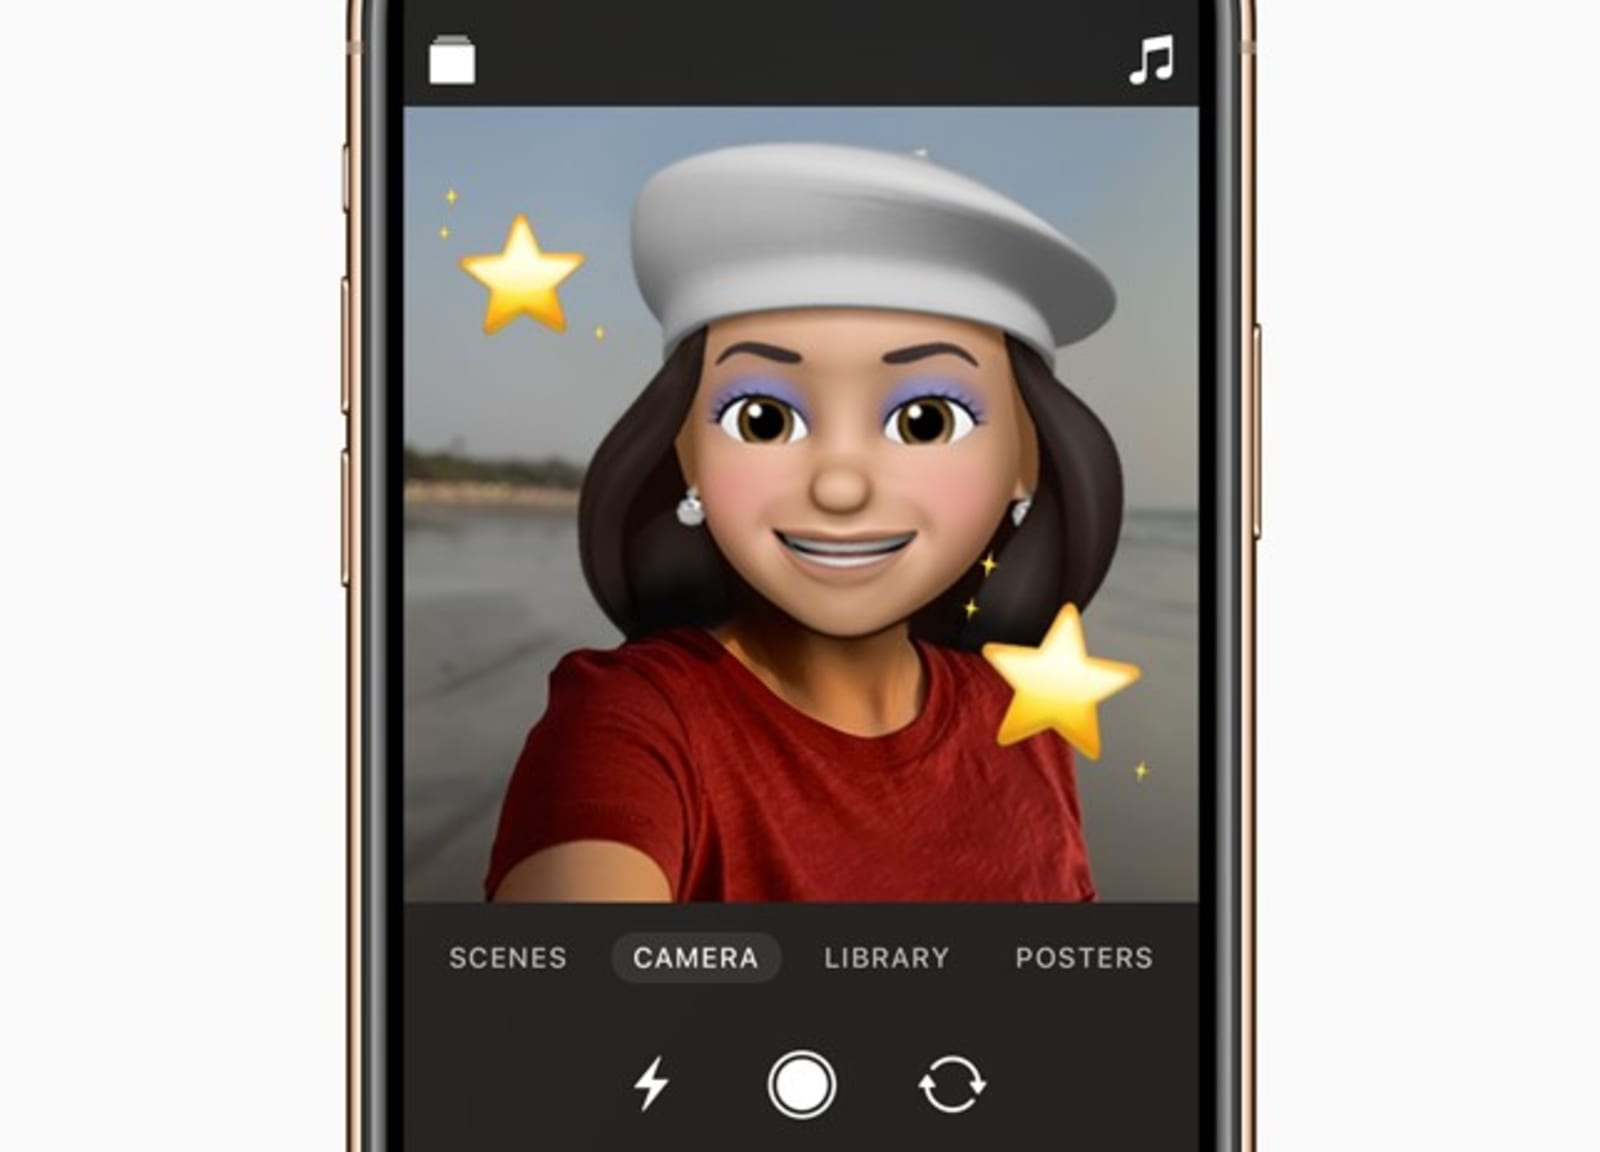 Apple brings Memoji and Animoji to its Clips video creation app